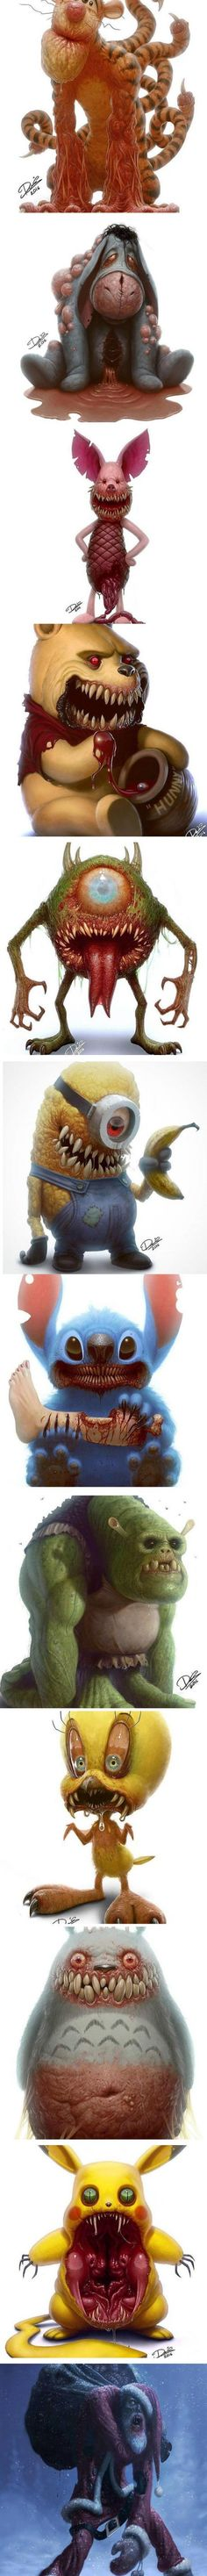 90s kids will remember th...ERMAGAWD NAW! (By Dennis Carlsson)